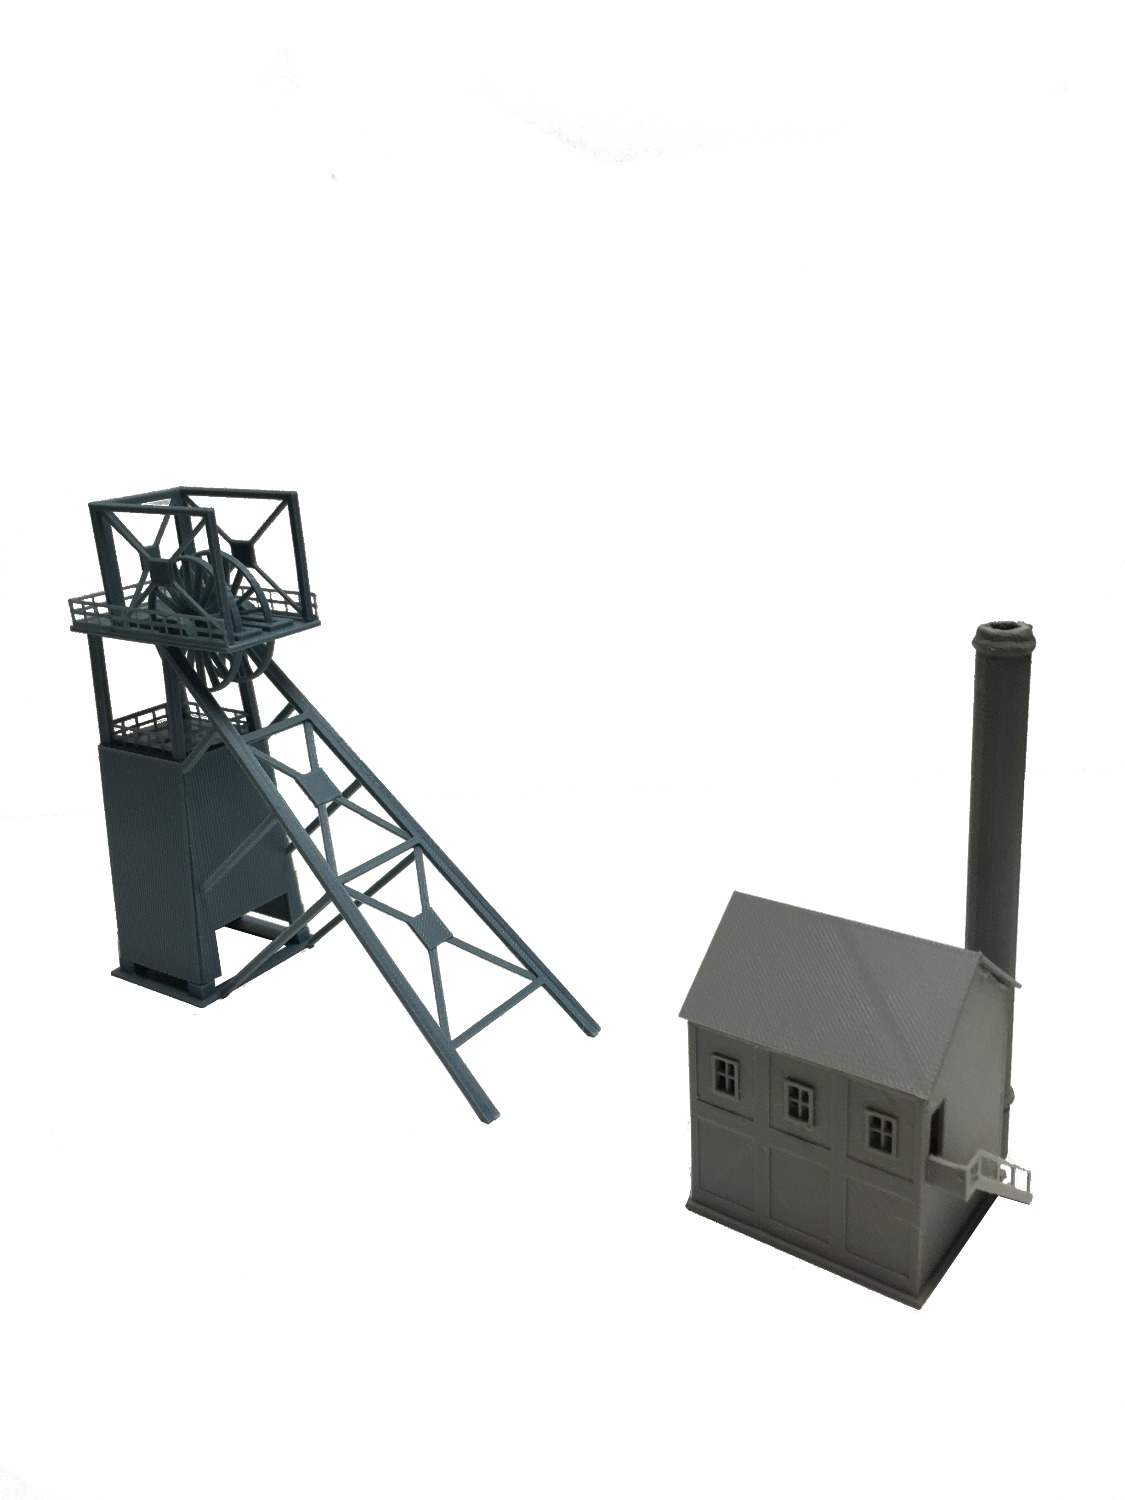 Mining Tower 2